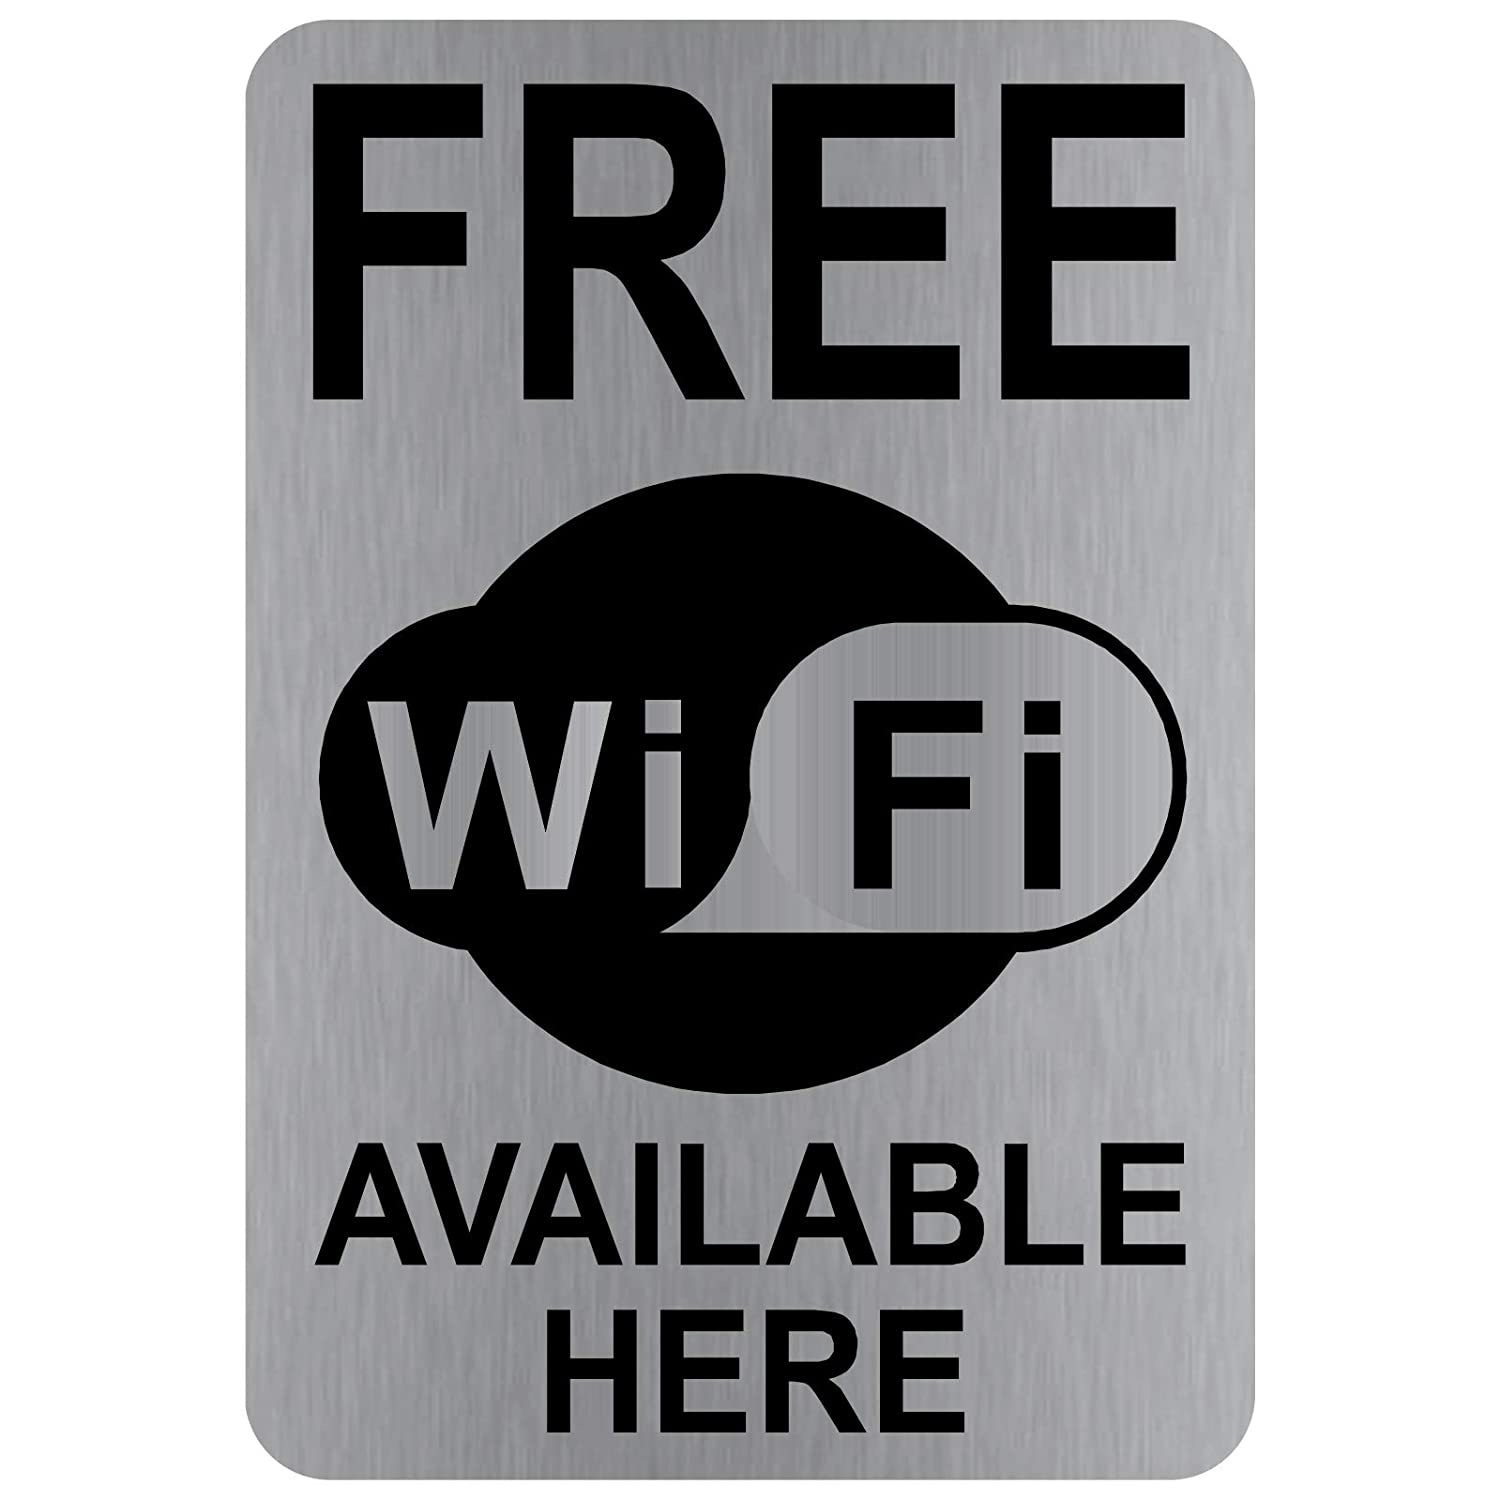 Free WiFi Available Here Sign-WITH IMAGE-Brushed Silver Aluminium Metal-Warning Door Notice Office Shop School Cafe Restaurant Pub Business Hotel Premises Internet Wireless Device Phone Electronics